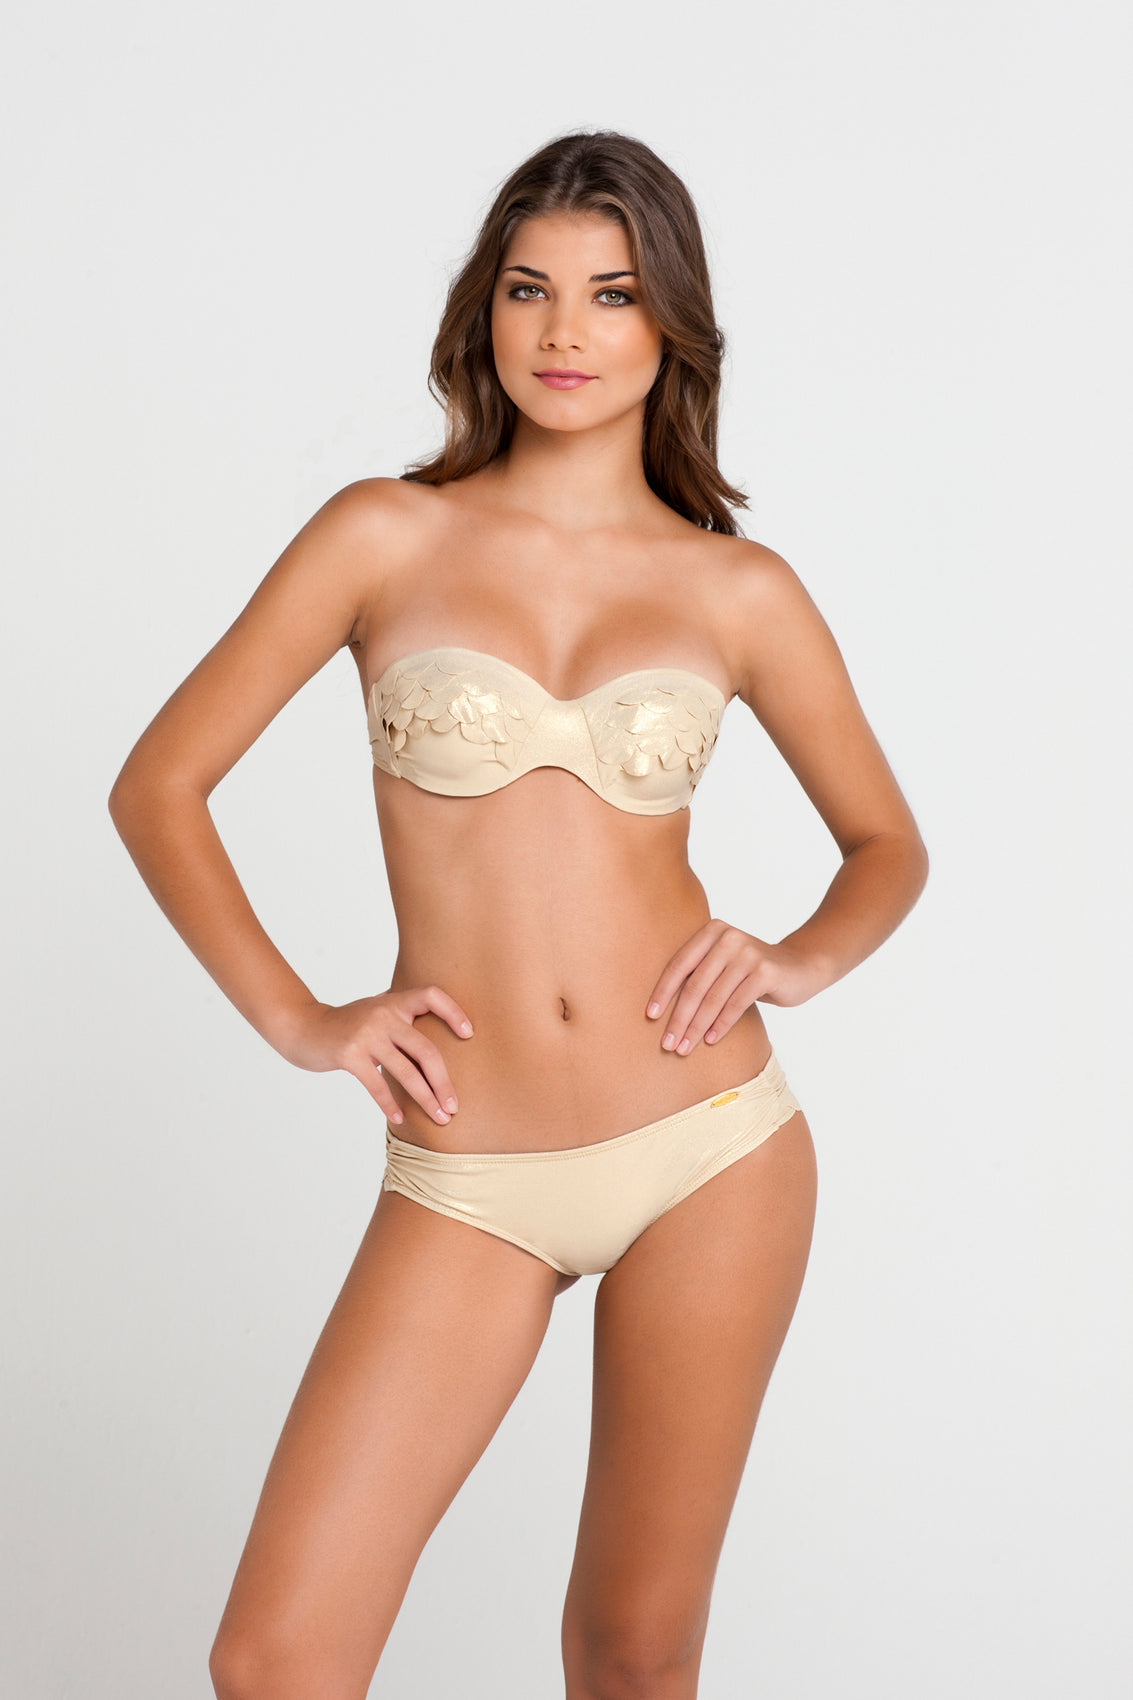 SI SOY SIRENA - Scalloped Underwire Push Up Bandeau Top & Scalloped Back Sassy Cheeks Bottom • Gold Rush (862761091116)